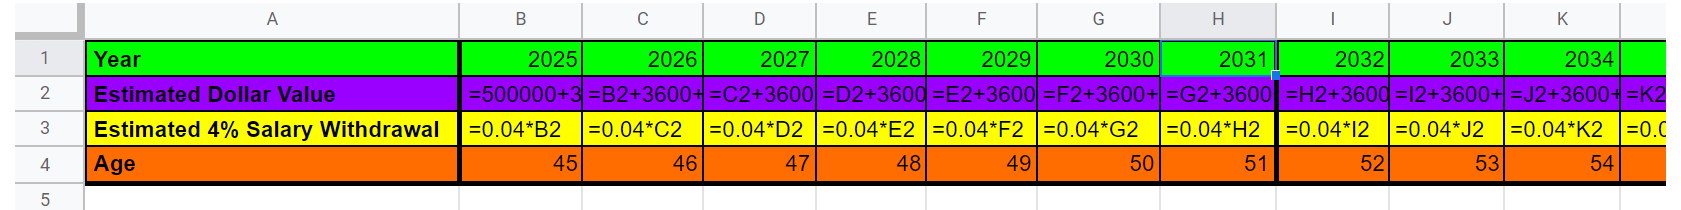 Google Sheets row 3, columns A-K, highlighted in yellow. Cell A3 reads Estimated 4% Salary Withdrawal. Cells B3 through K3 shows formulas to calculate 4% of the values in the corresponding column in row 2.